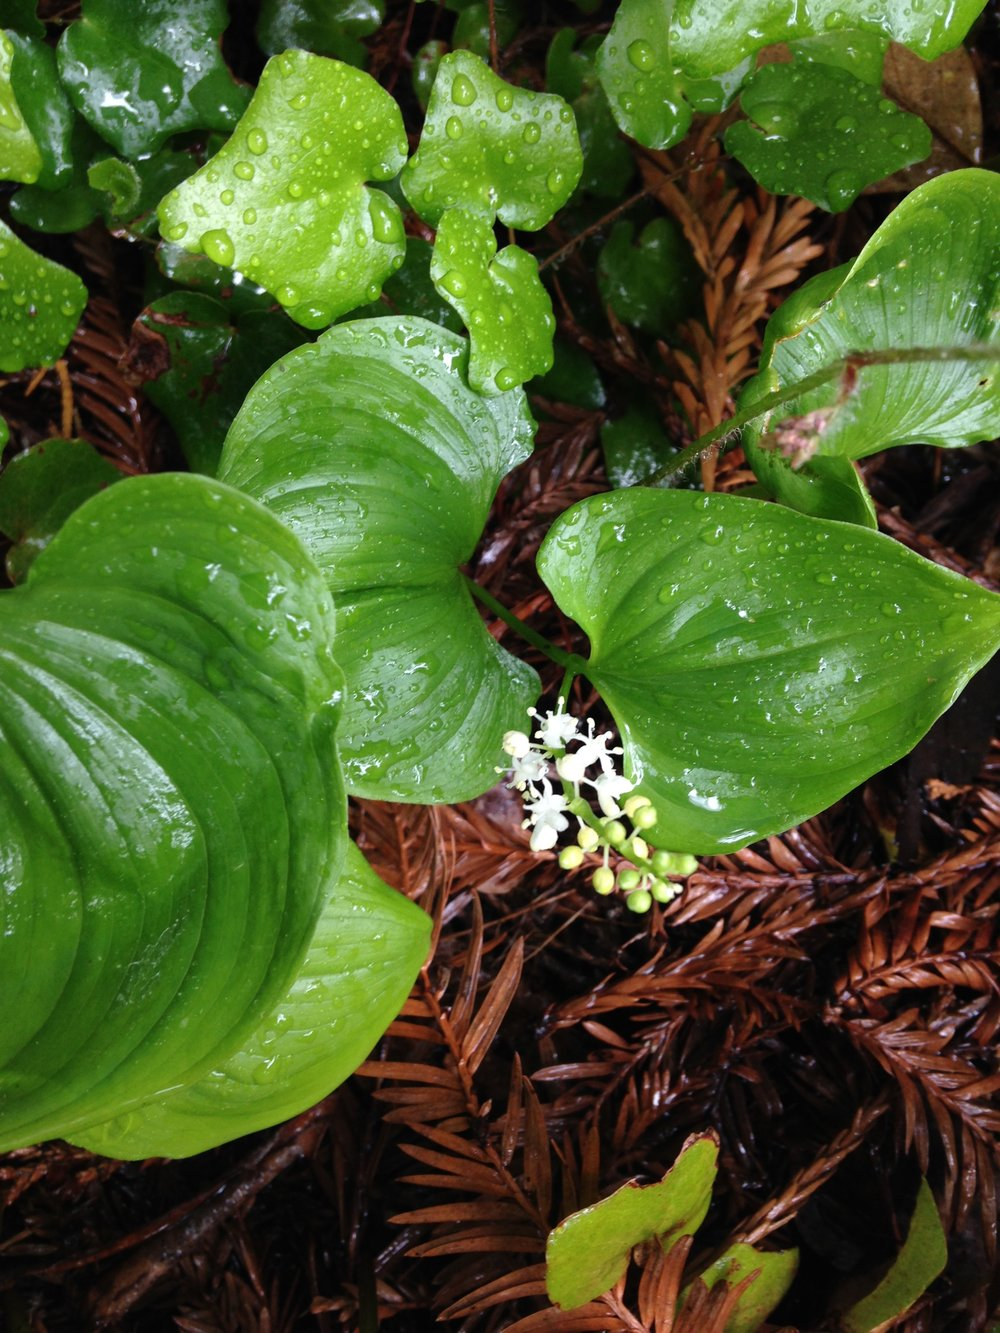 False Lily of the Valley (Maianthemum dilatatum)